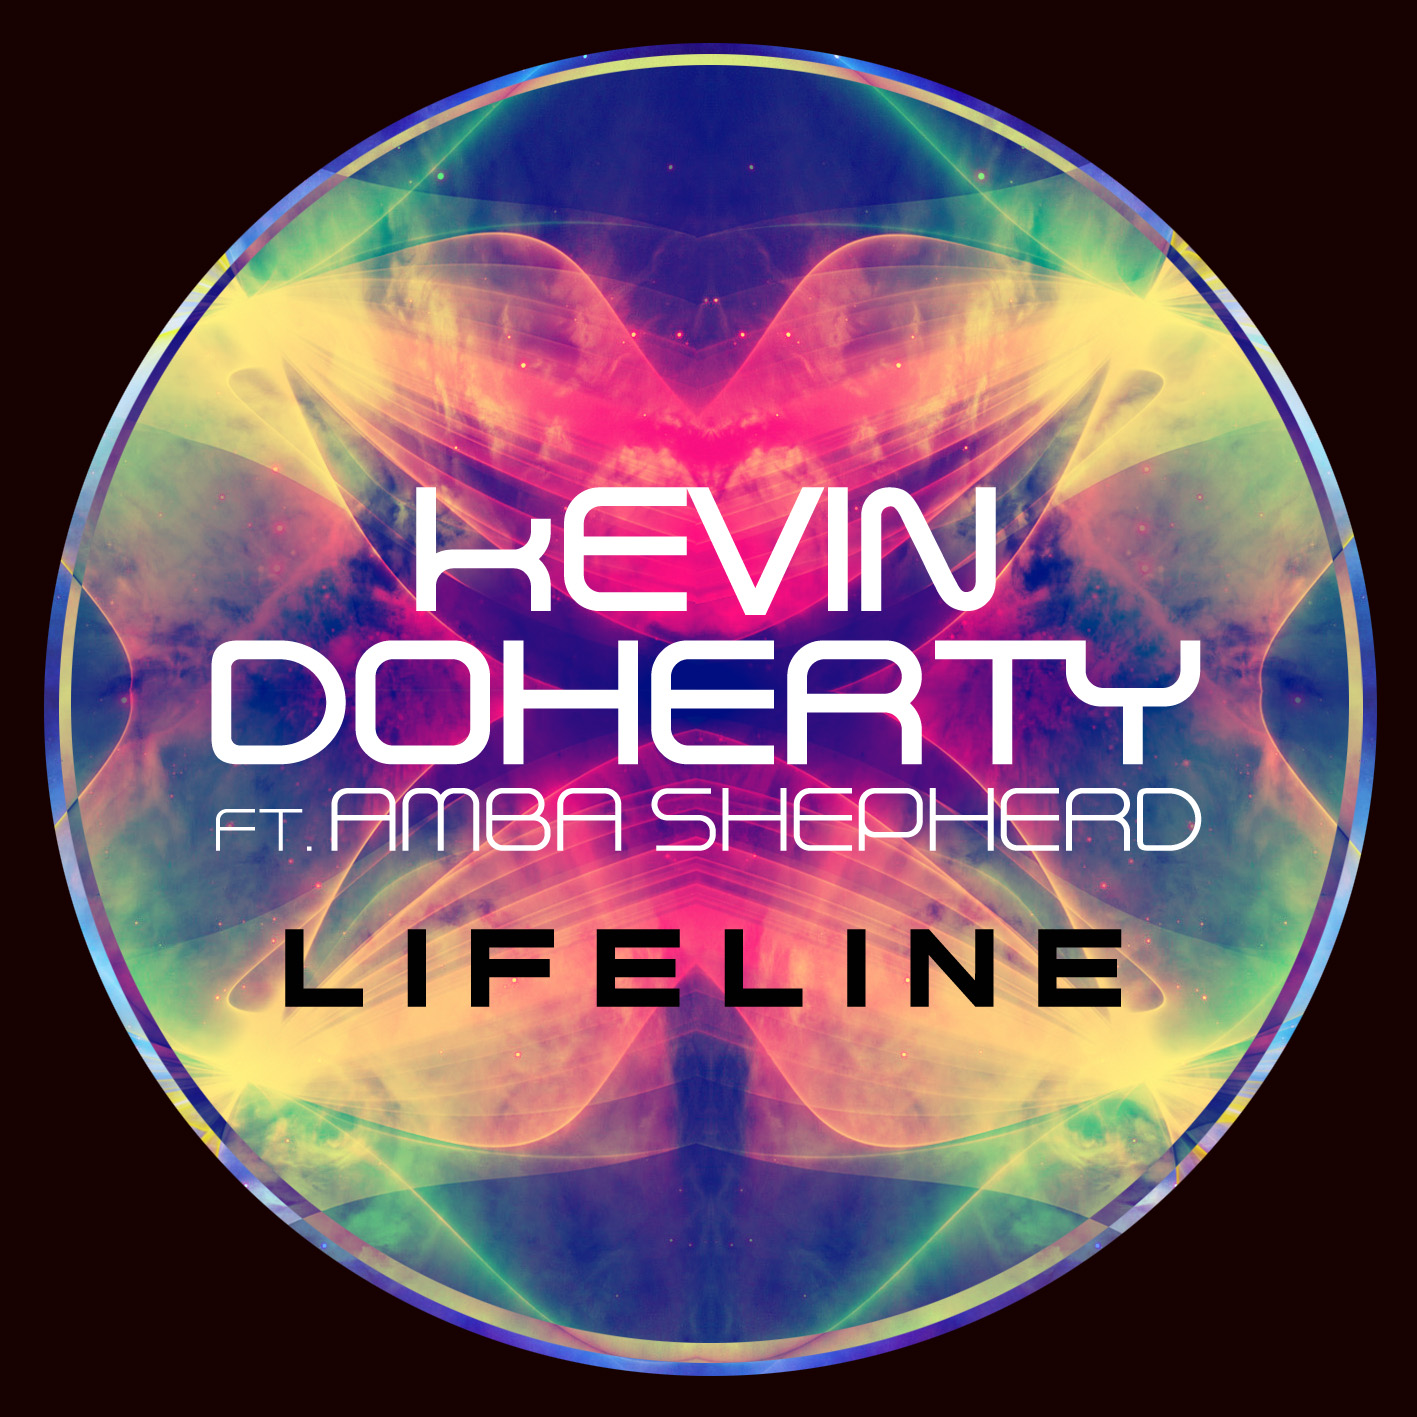 Kevin Doherty feat. Amba Shepherd - Lifeline (Vocal Club Mix)